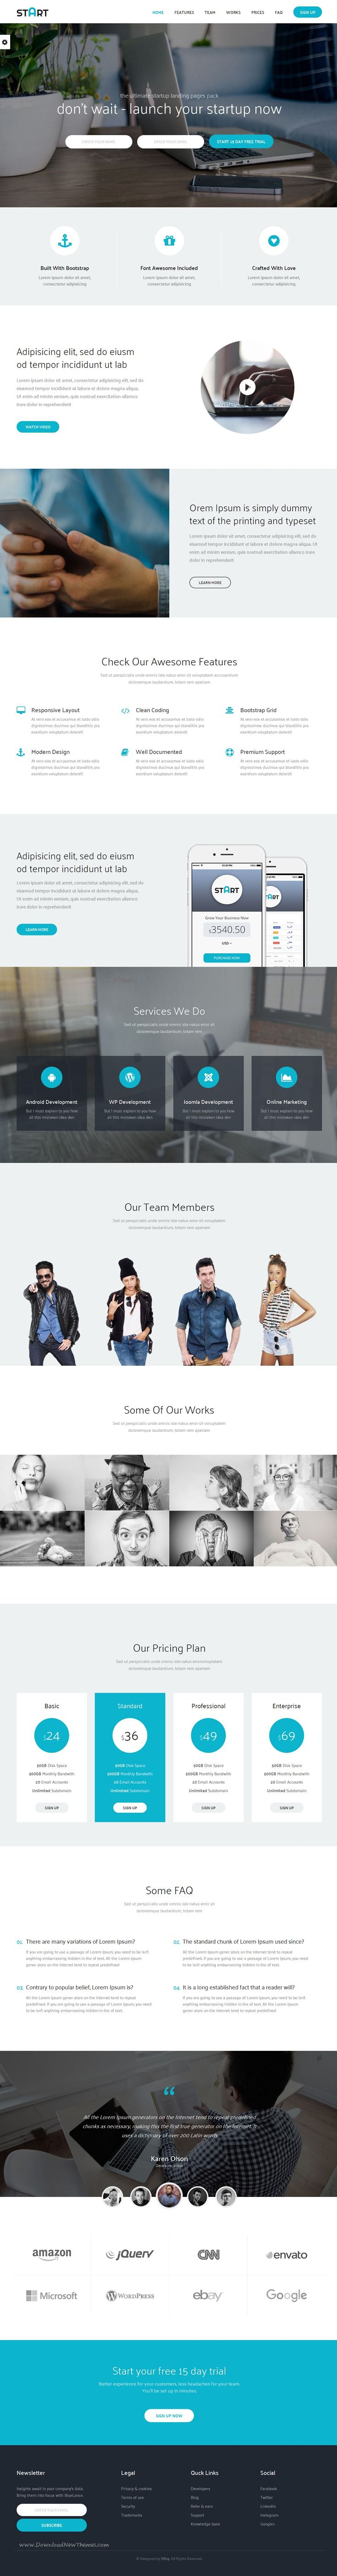 START - A Complete Startup Landing Pages Pack | Diseño paginas web ...